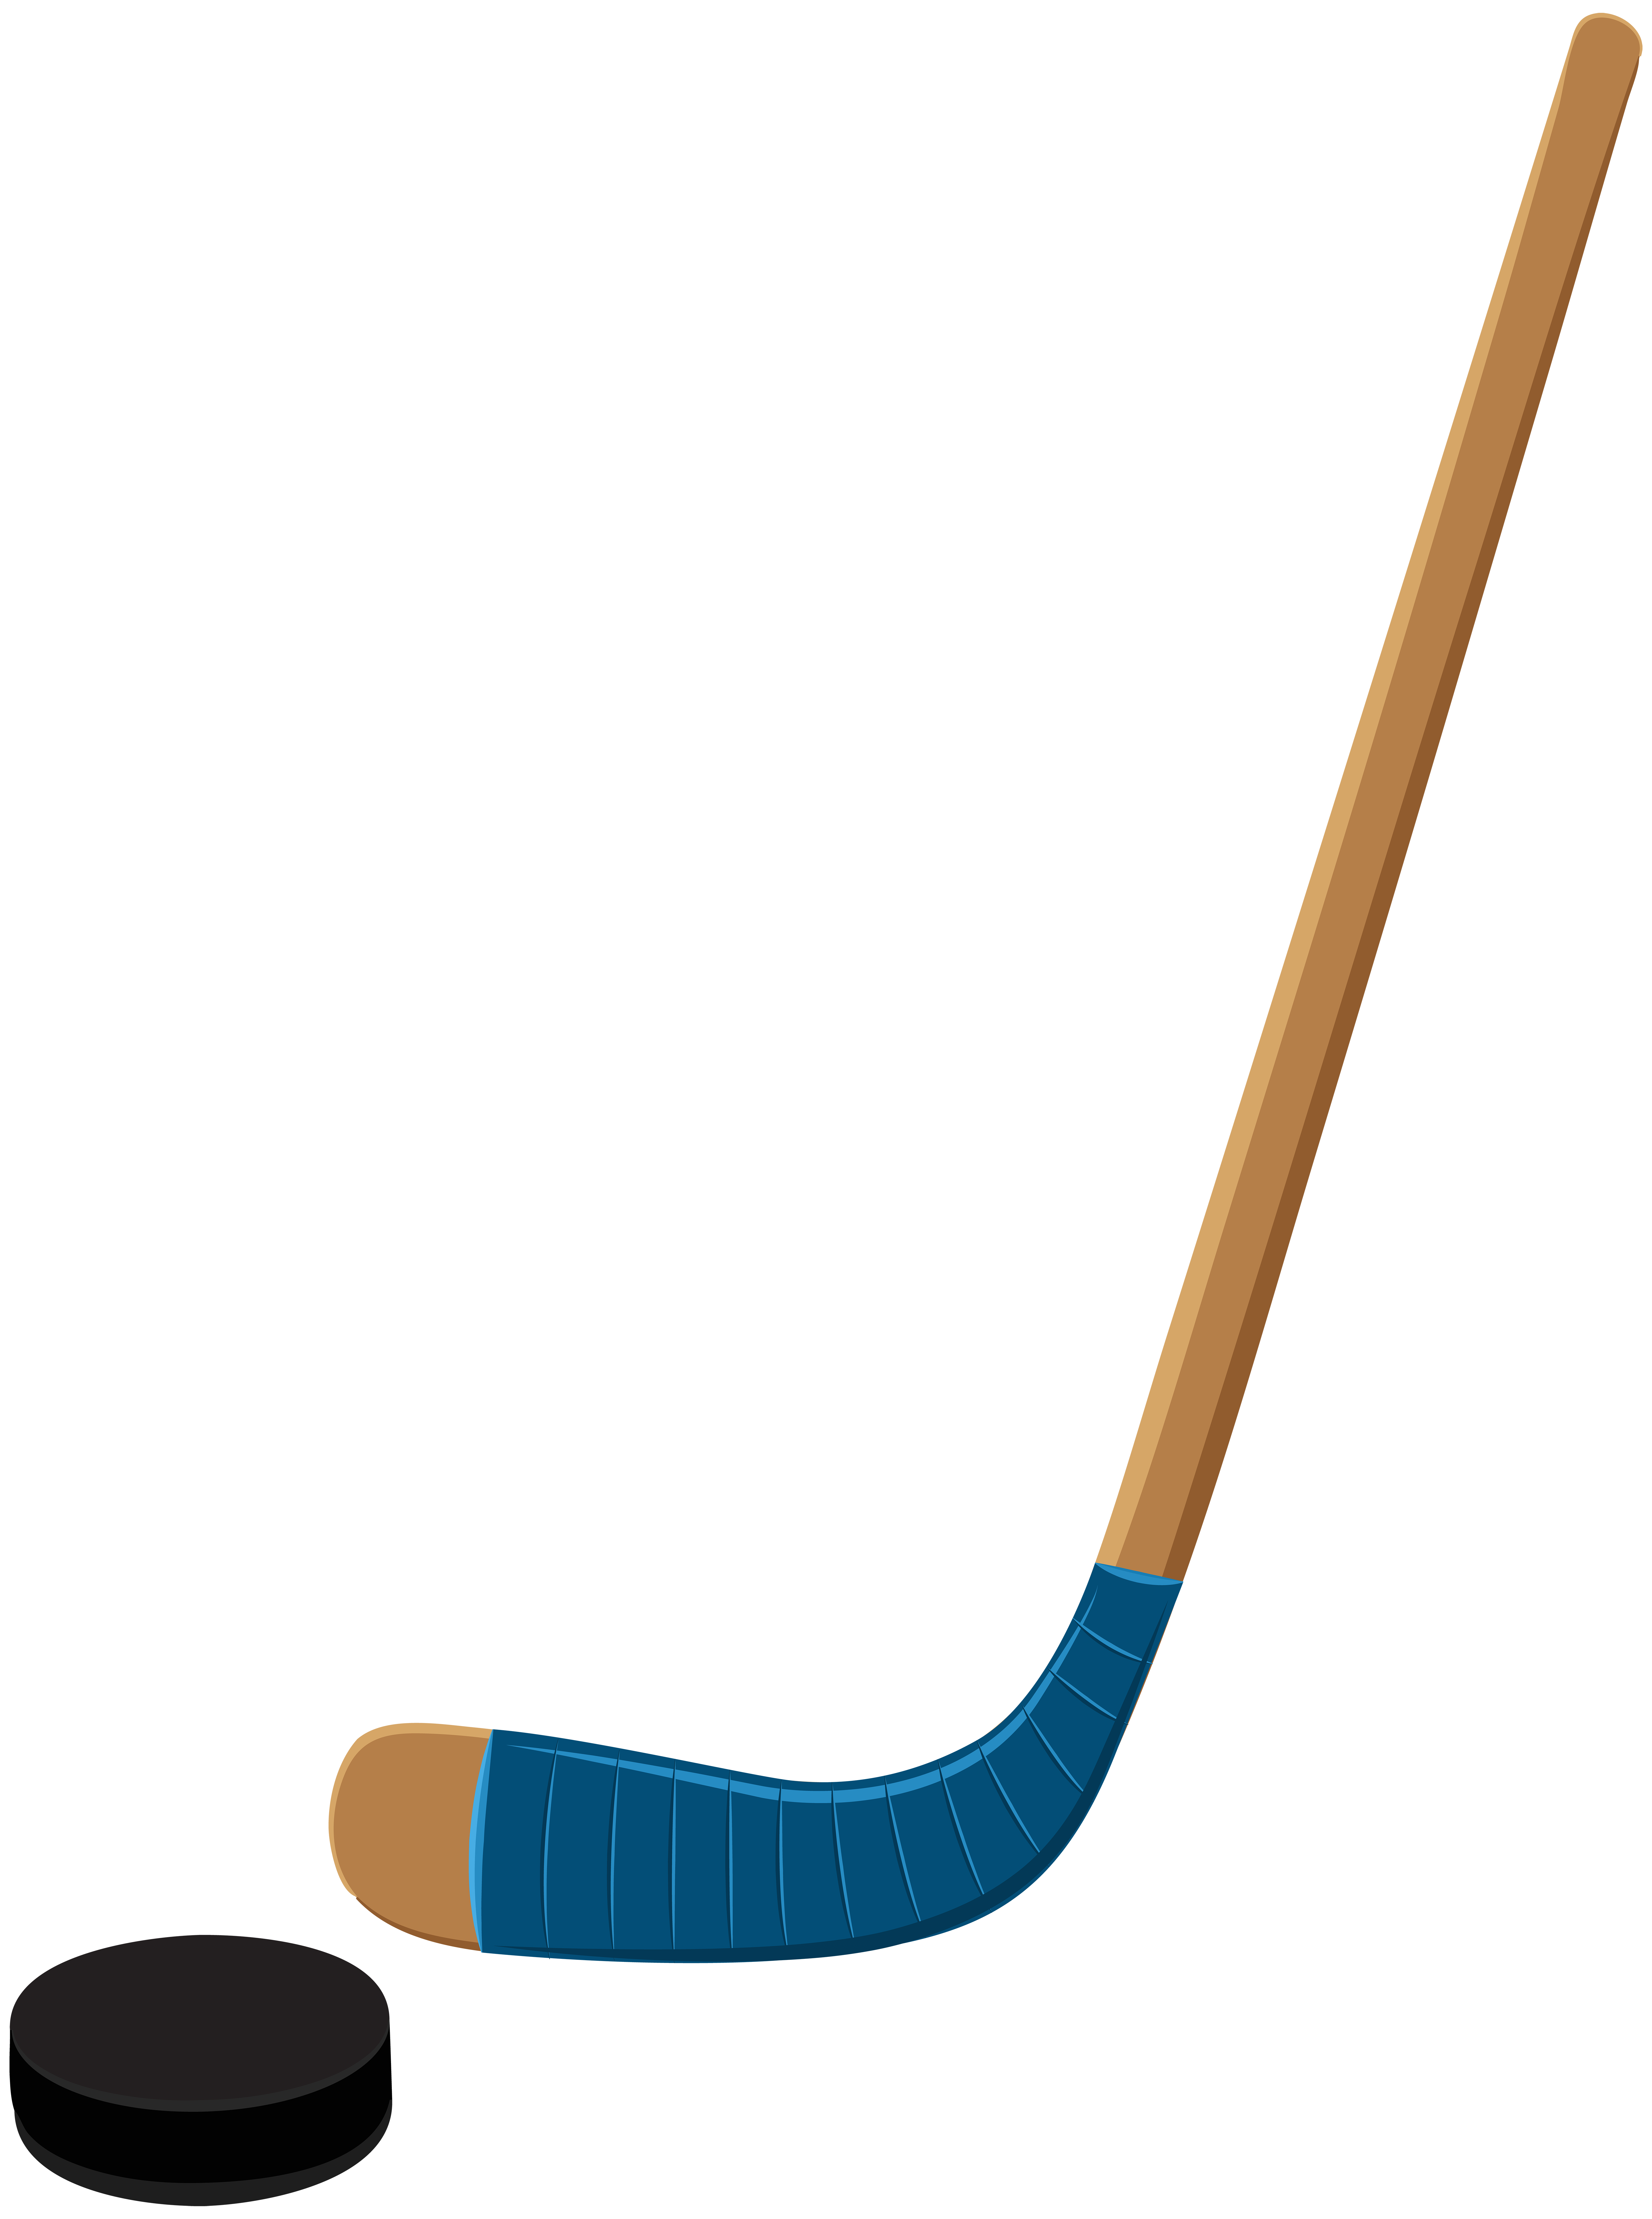 Stick flower clipart banner transparent stock Hockey Stick Clip Art Image | Gallery Yopriceville - High-Quality ... banner transparent stock